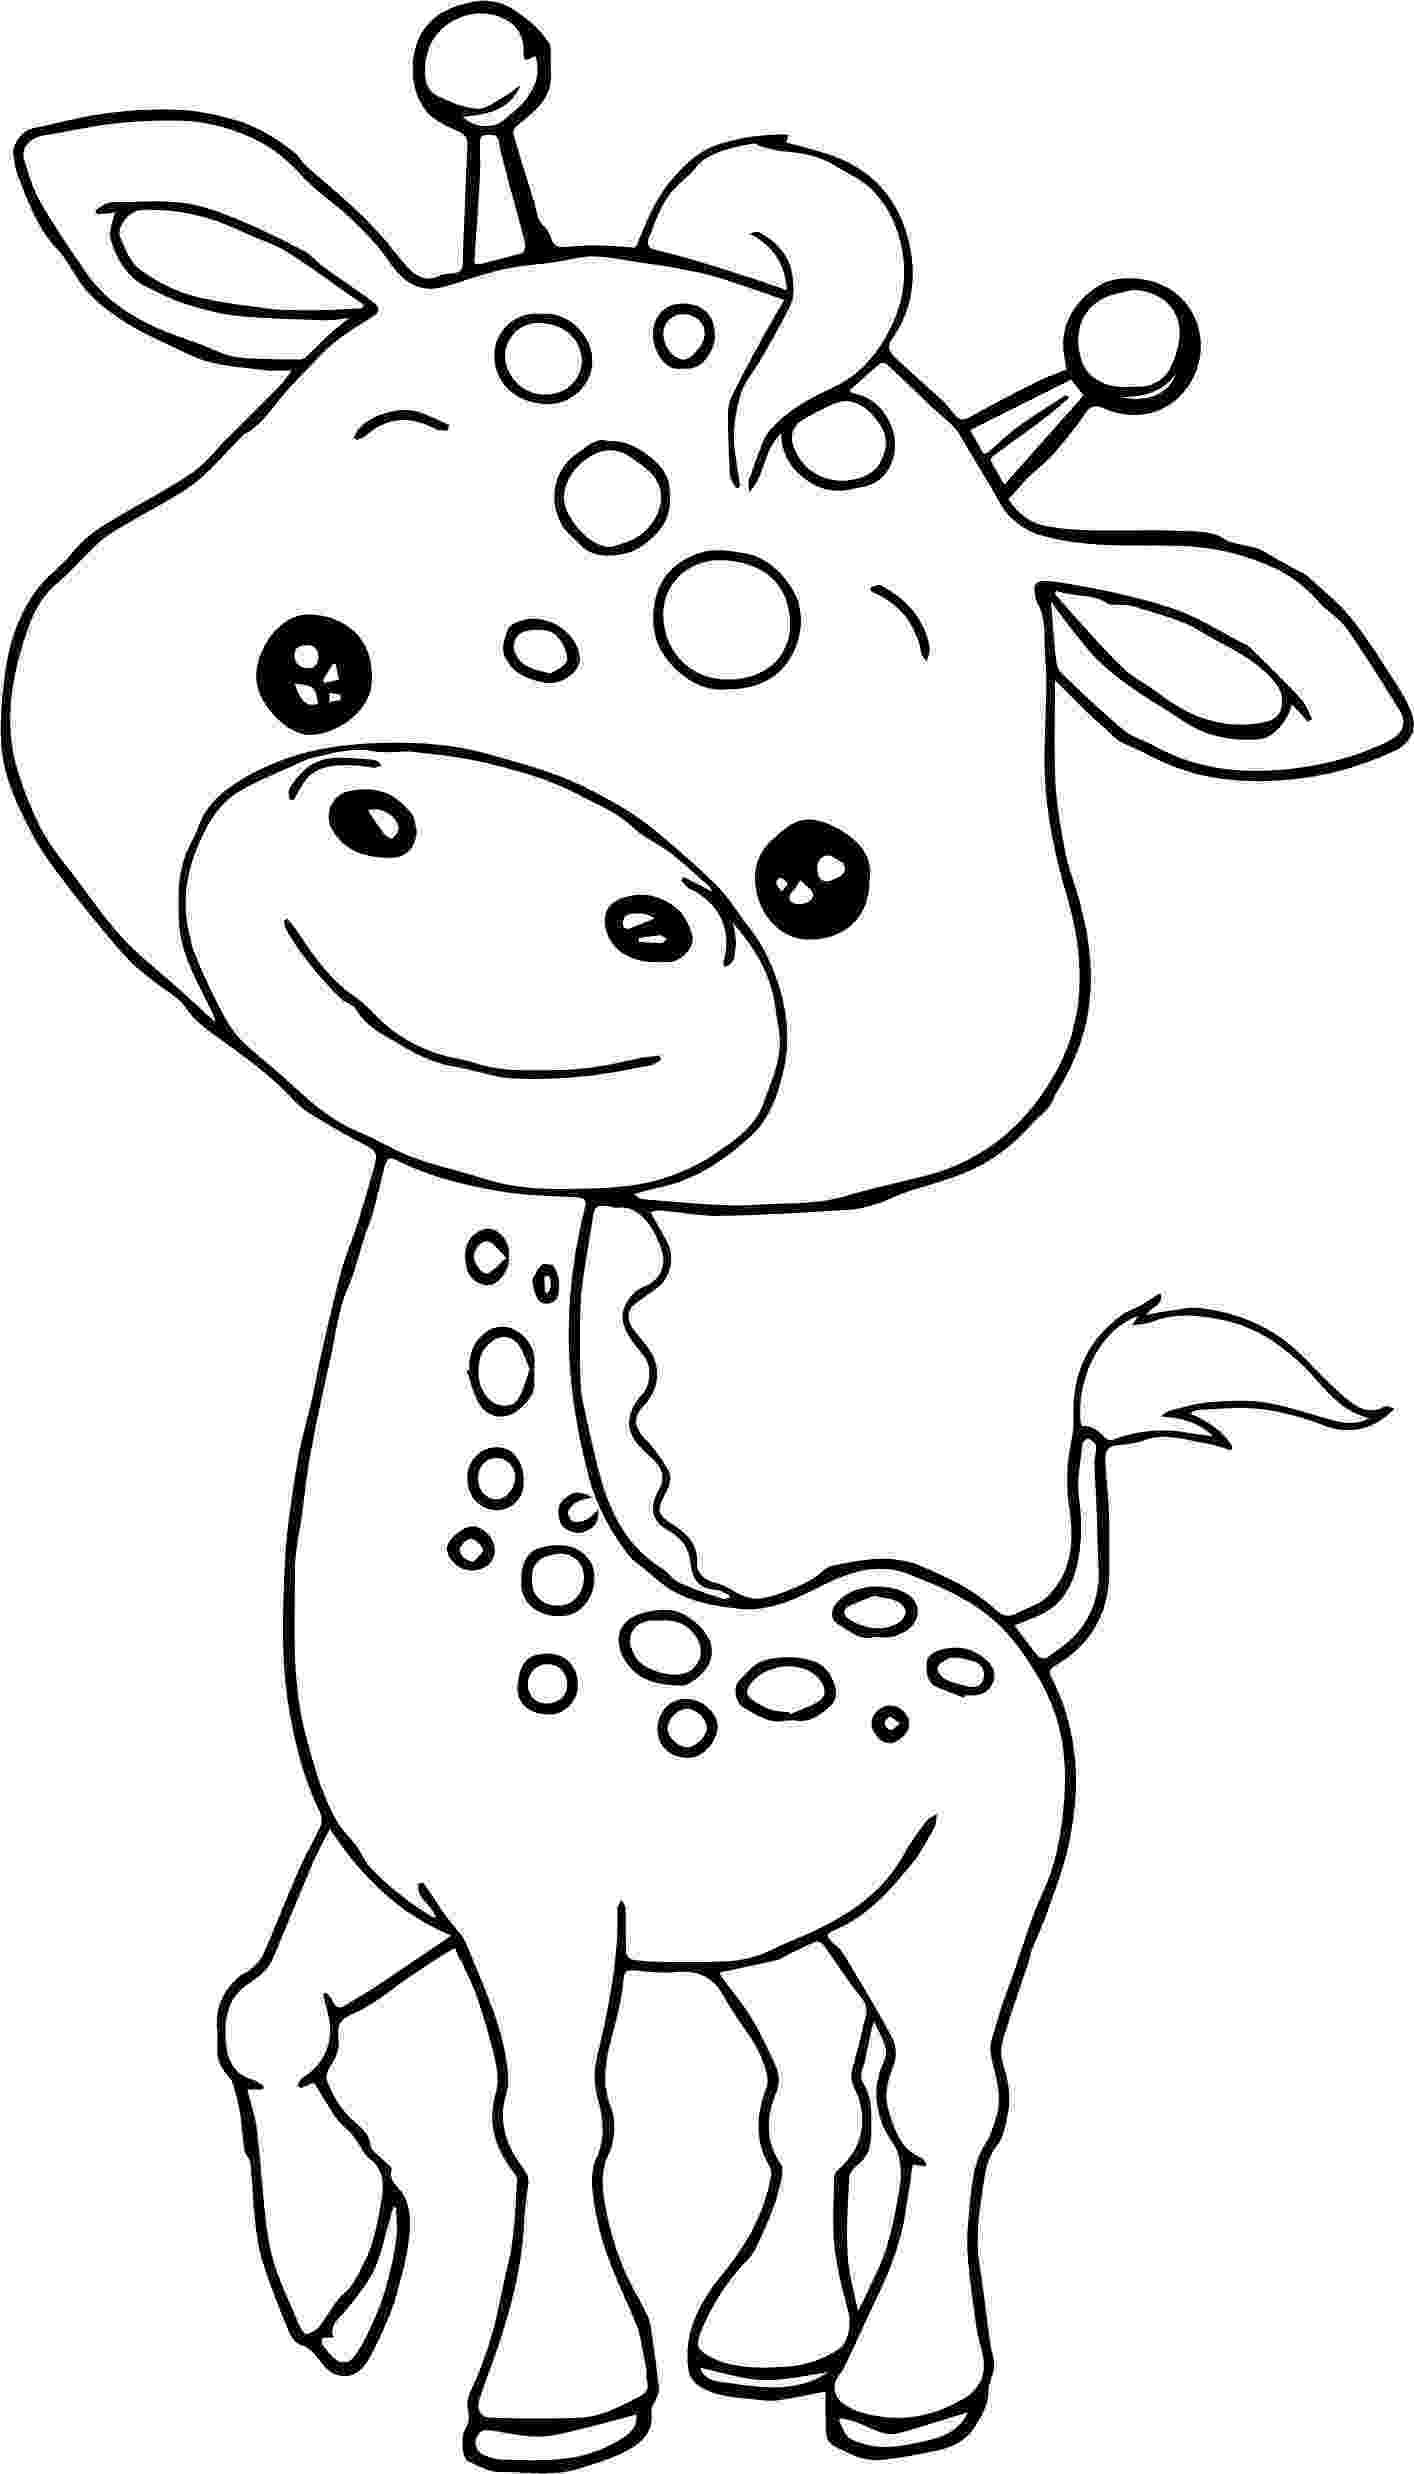 zoo animals colouring pages free free animals coloring pages zoo to kids animals zoo free colouring pages